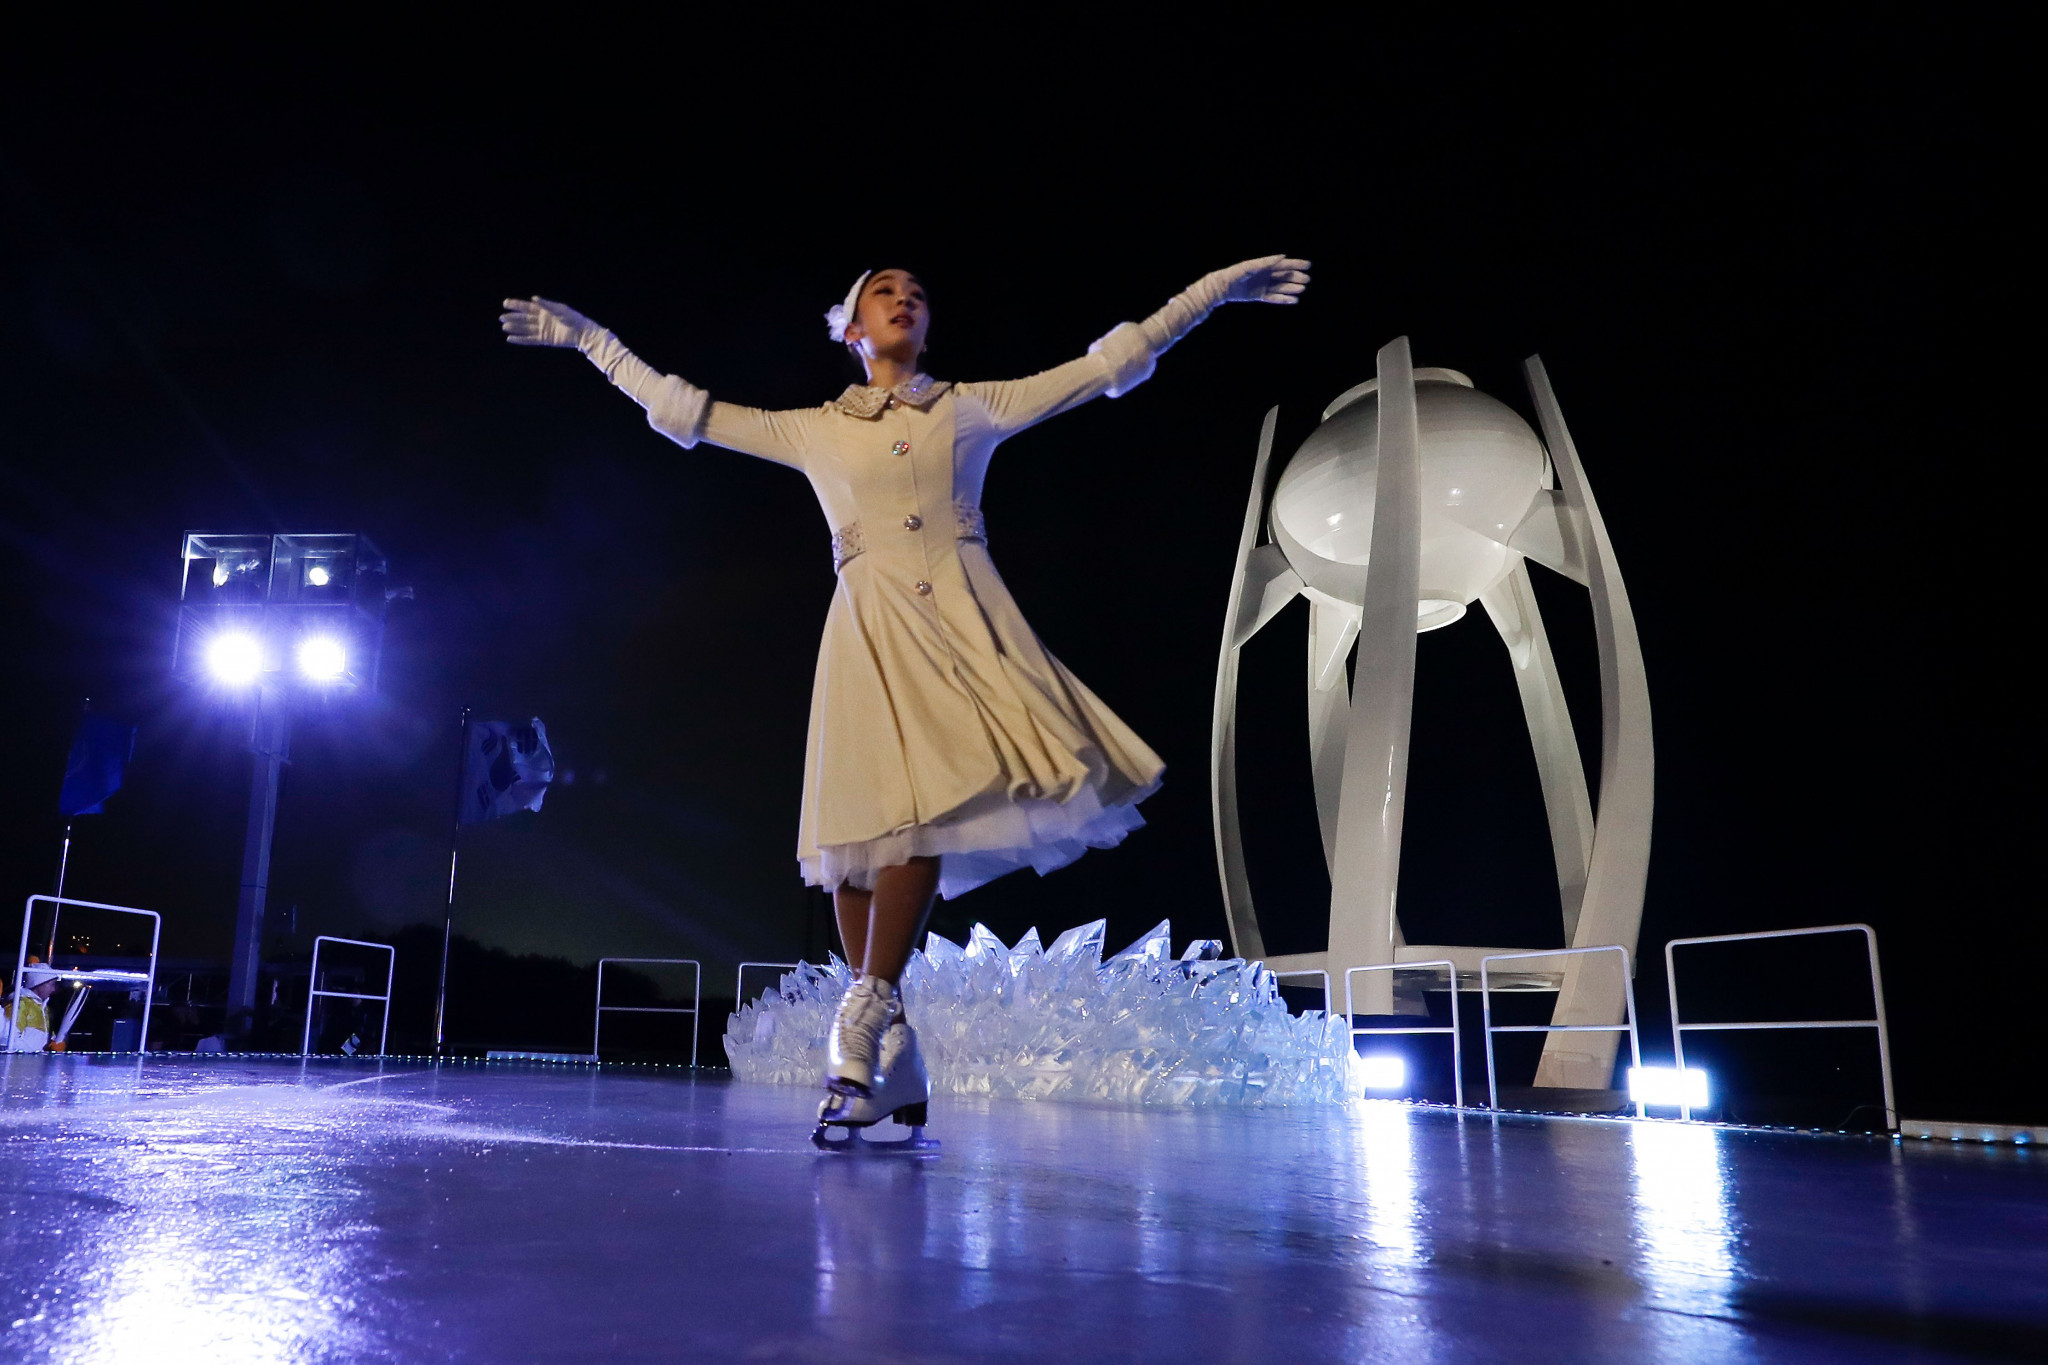 Olympic gold medallist Yuna Kim performs during the Opening Ceremony of Pyeongchang 2018 ©Getty Images